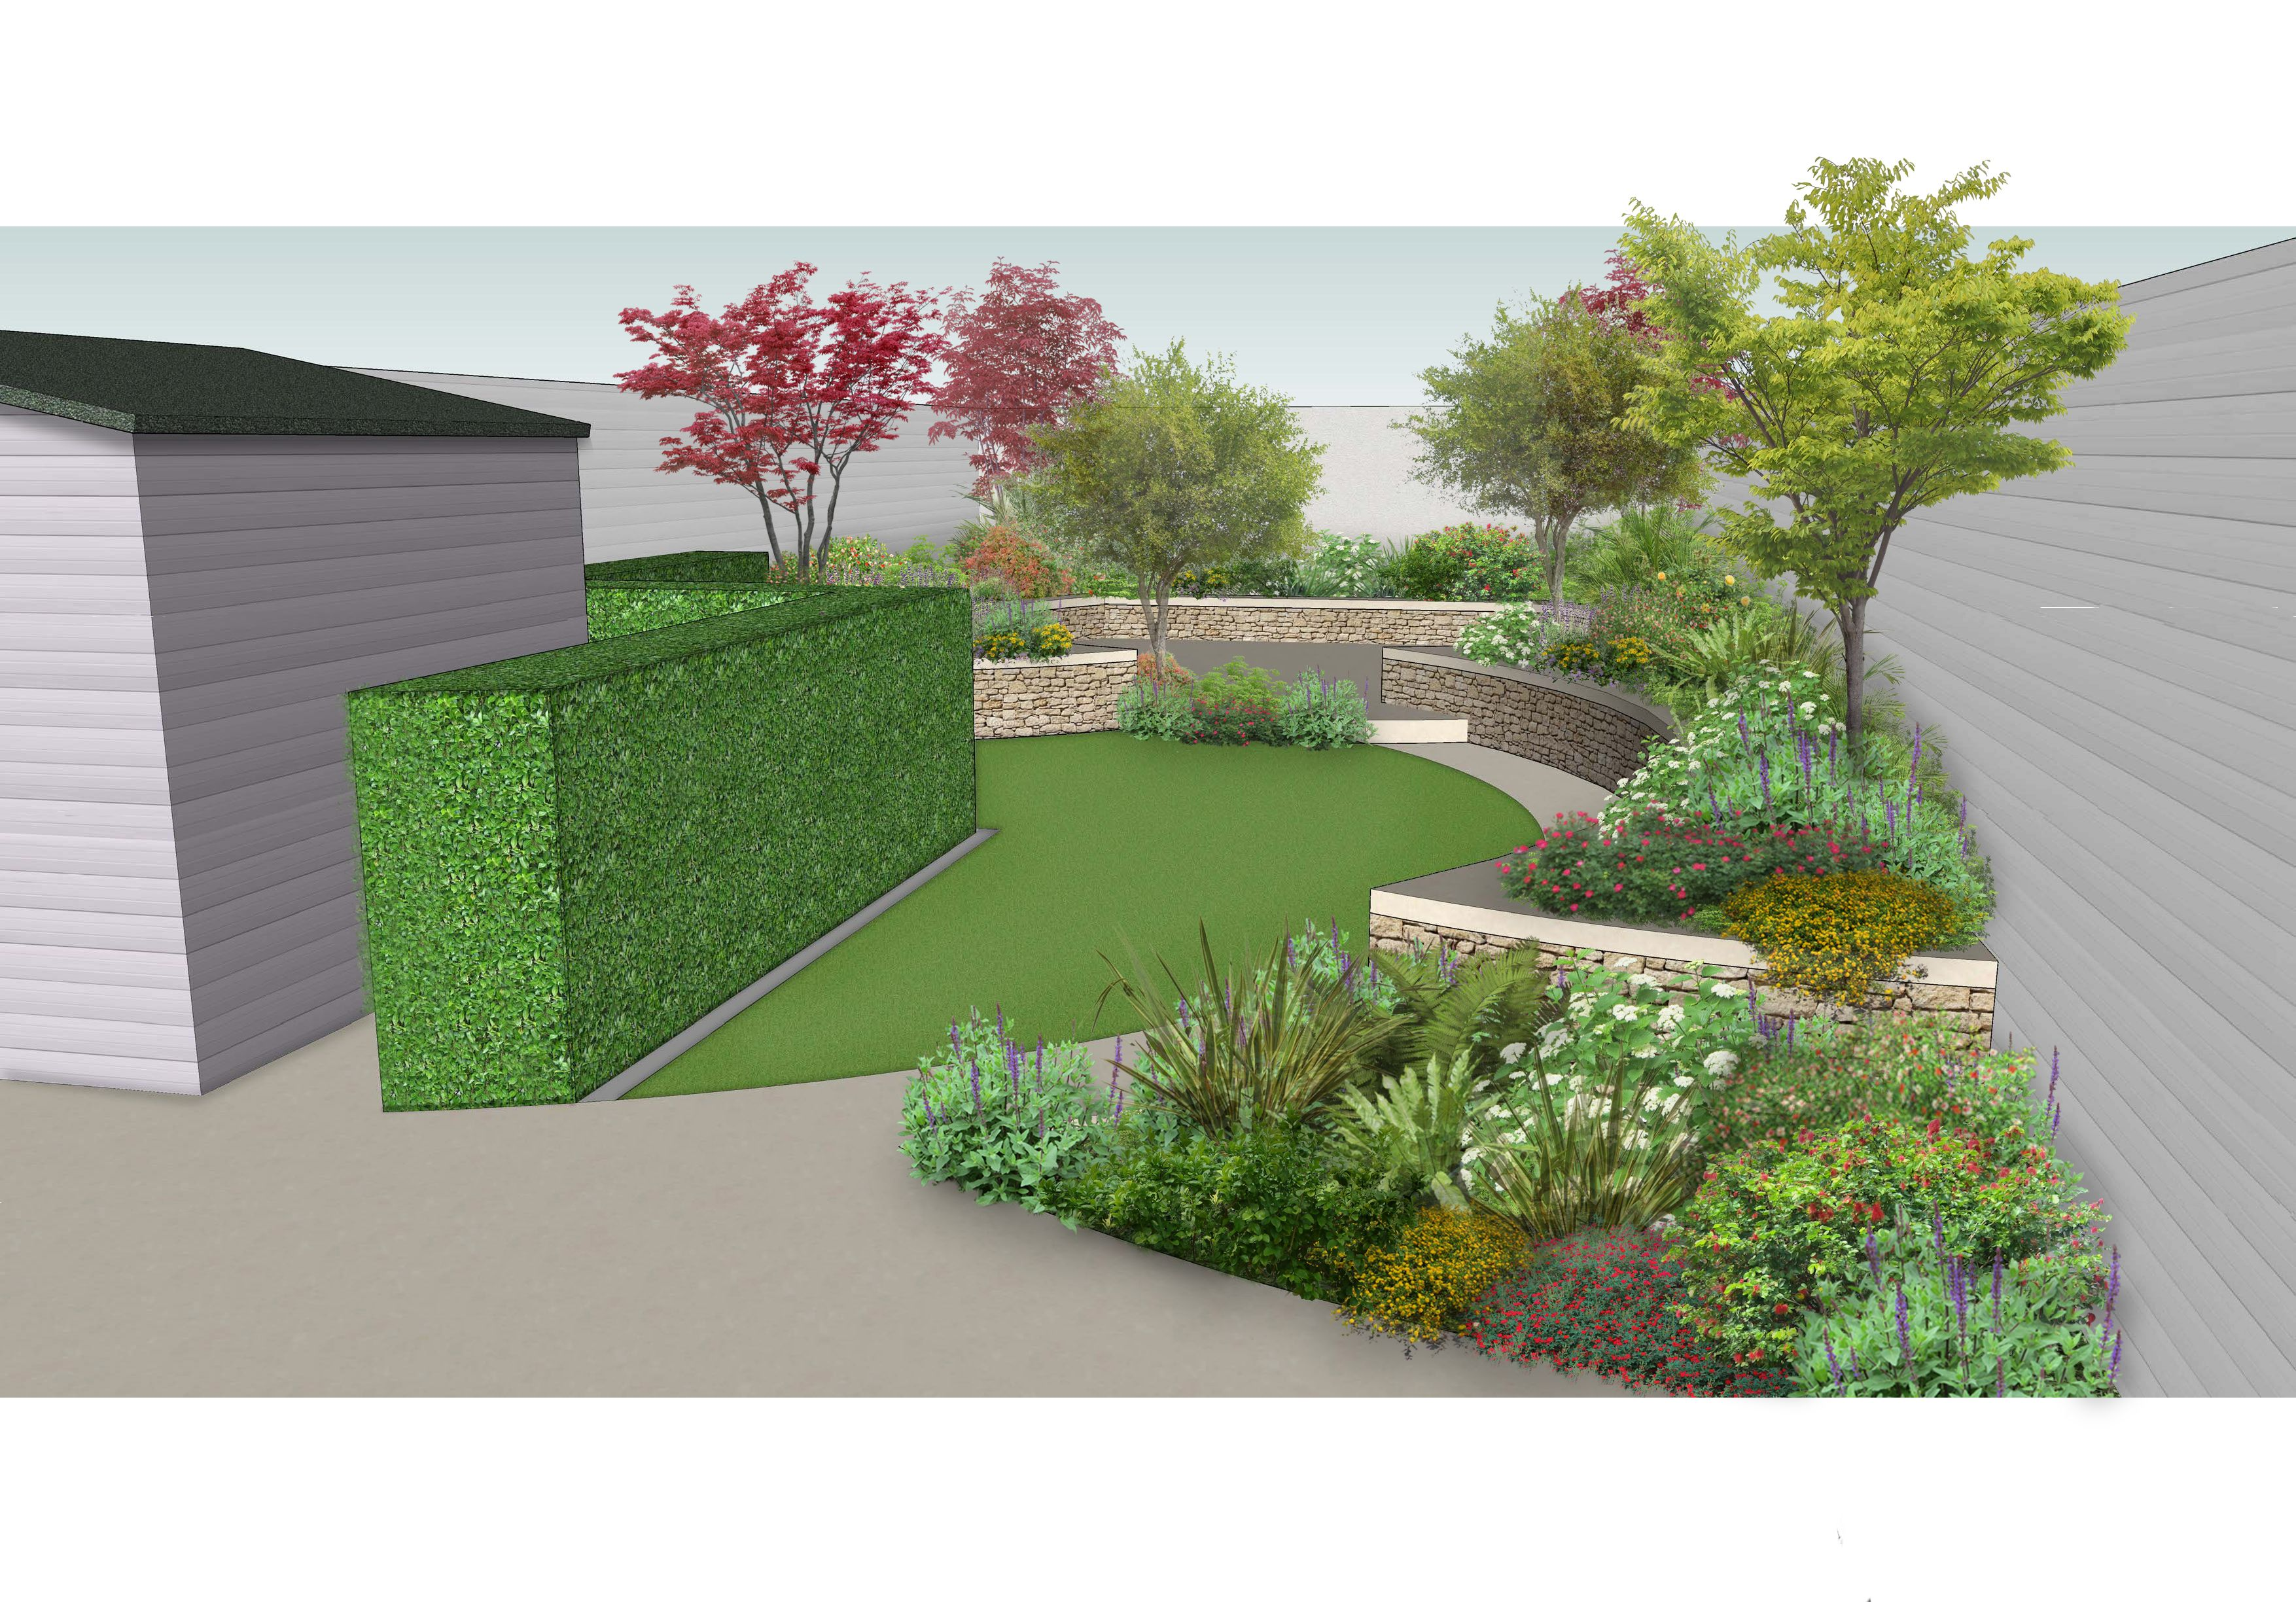 Design Visual For A New Garden Using Planting And Raised Beds To Create A Series Of Focal Points And Spaces Within Space Www Owenc Garten Ideen Terassen Garten